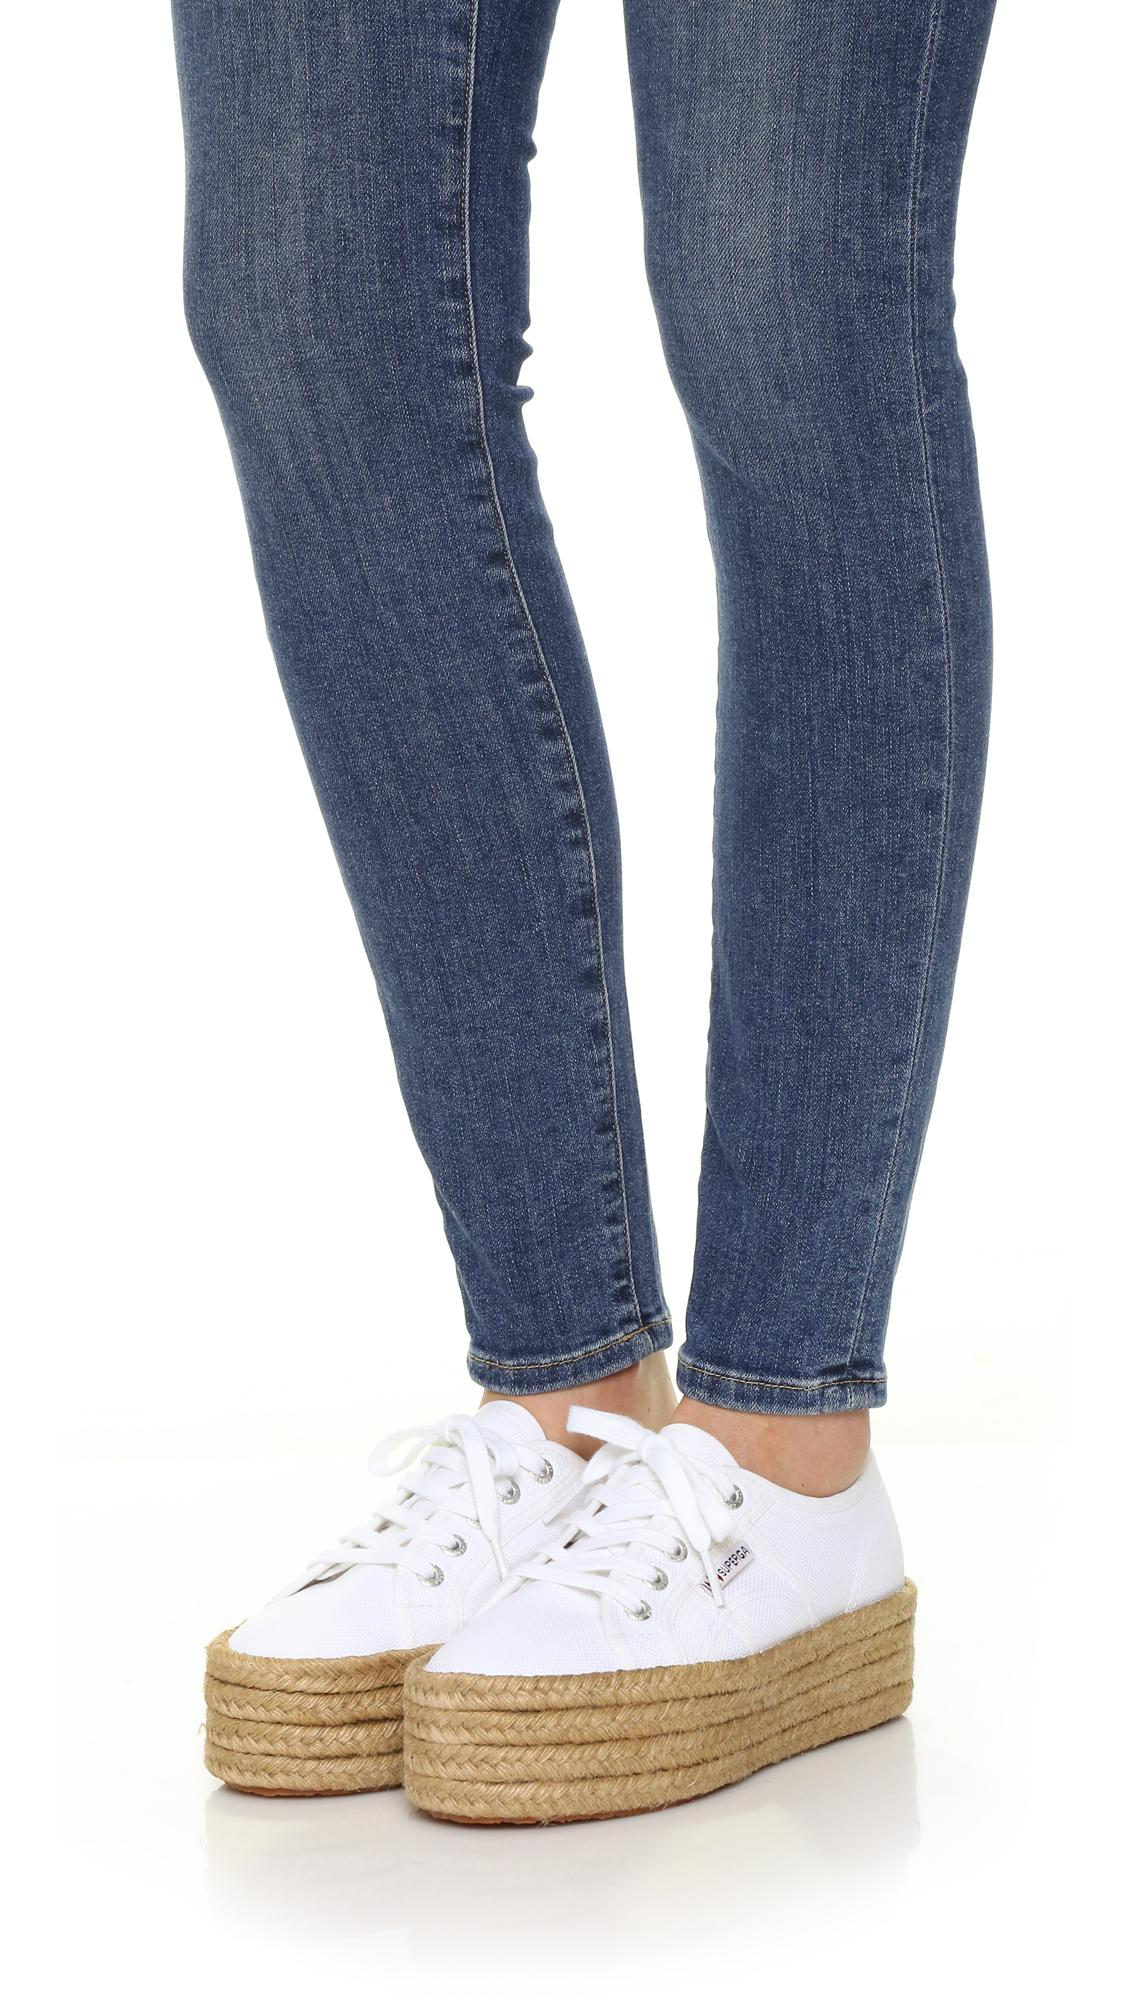 920b7c791 Gallery. Previously sold at: Shopbop · Women's Platform Sneakers